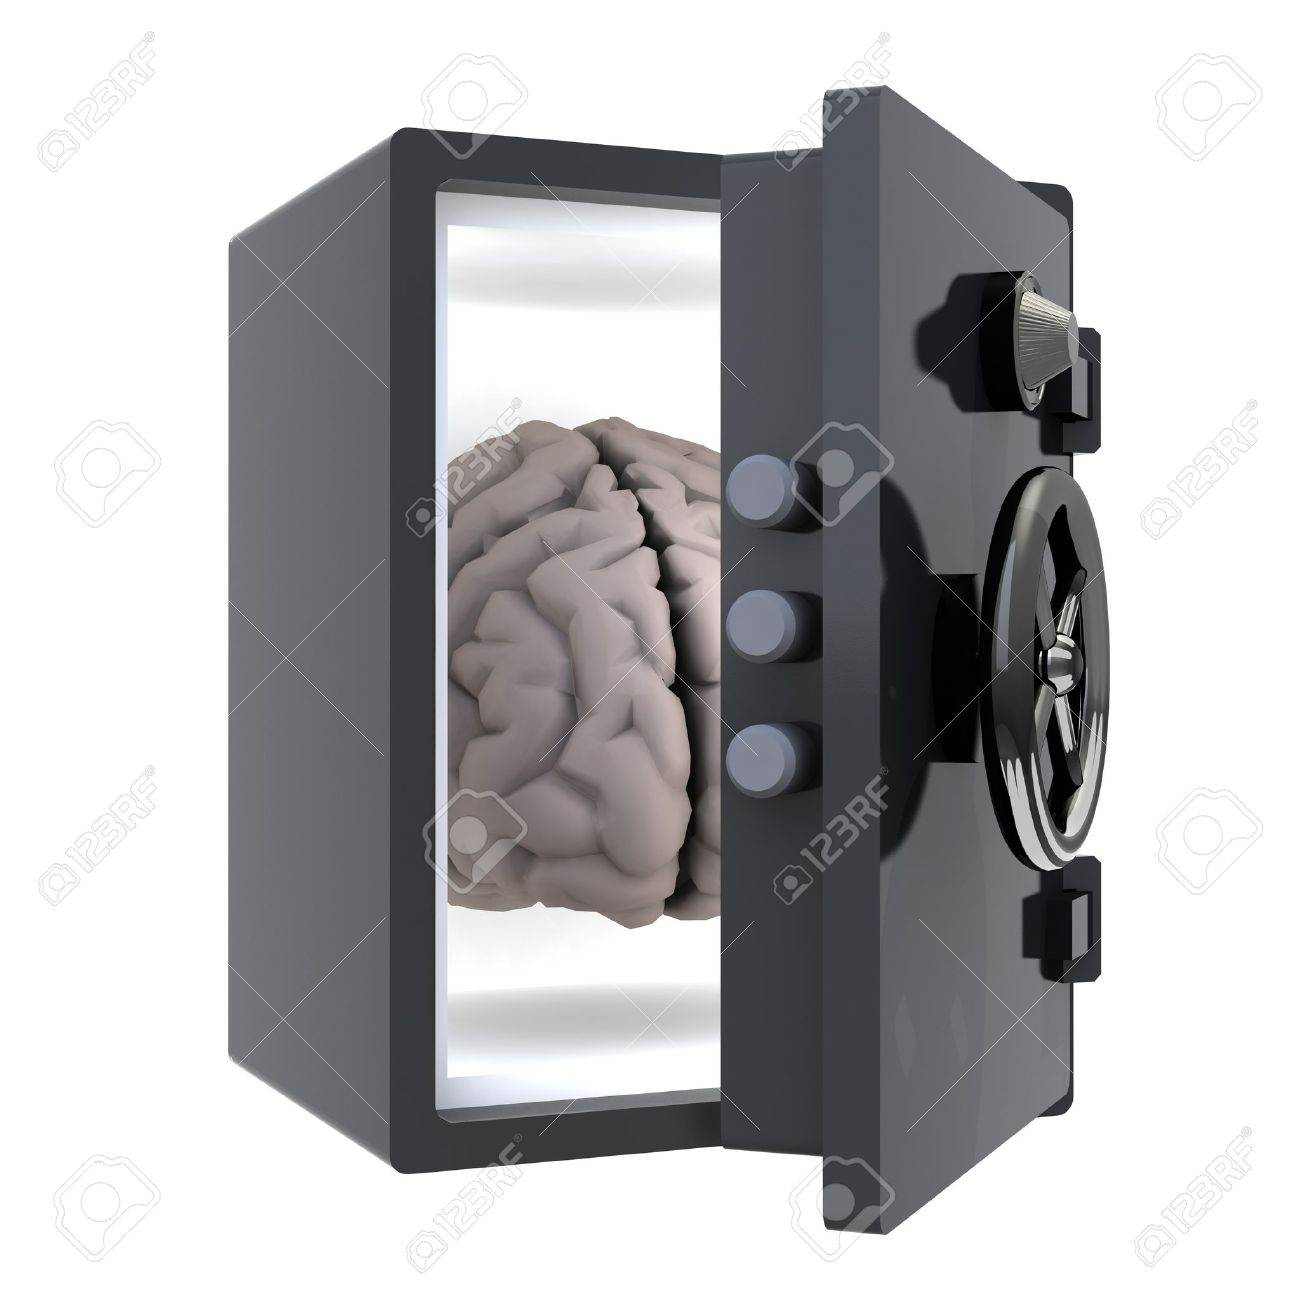 brain protected in a safe, 3d illustration Stock Illustration - 16832498